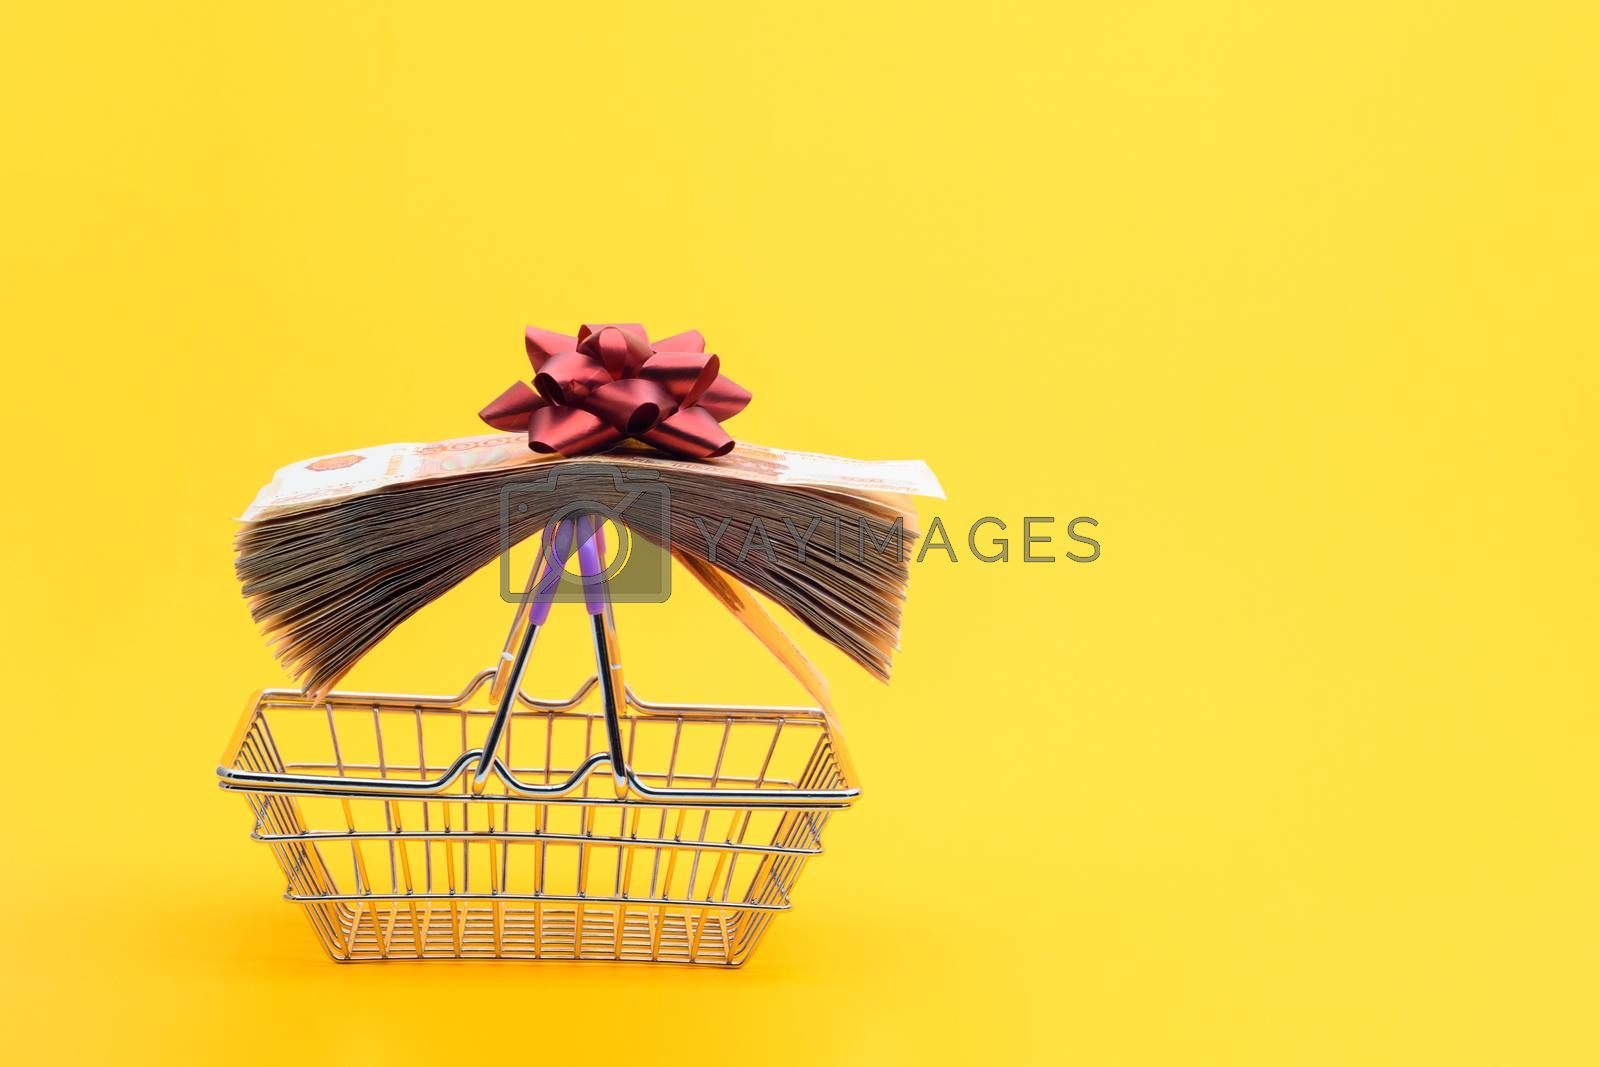 On the handles of the grocery cart lies a bundle of notes packed with gift ribbon and a red bow